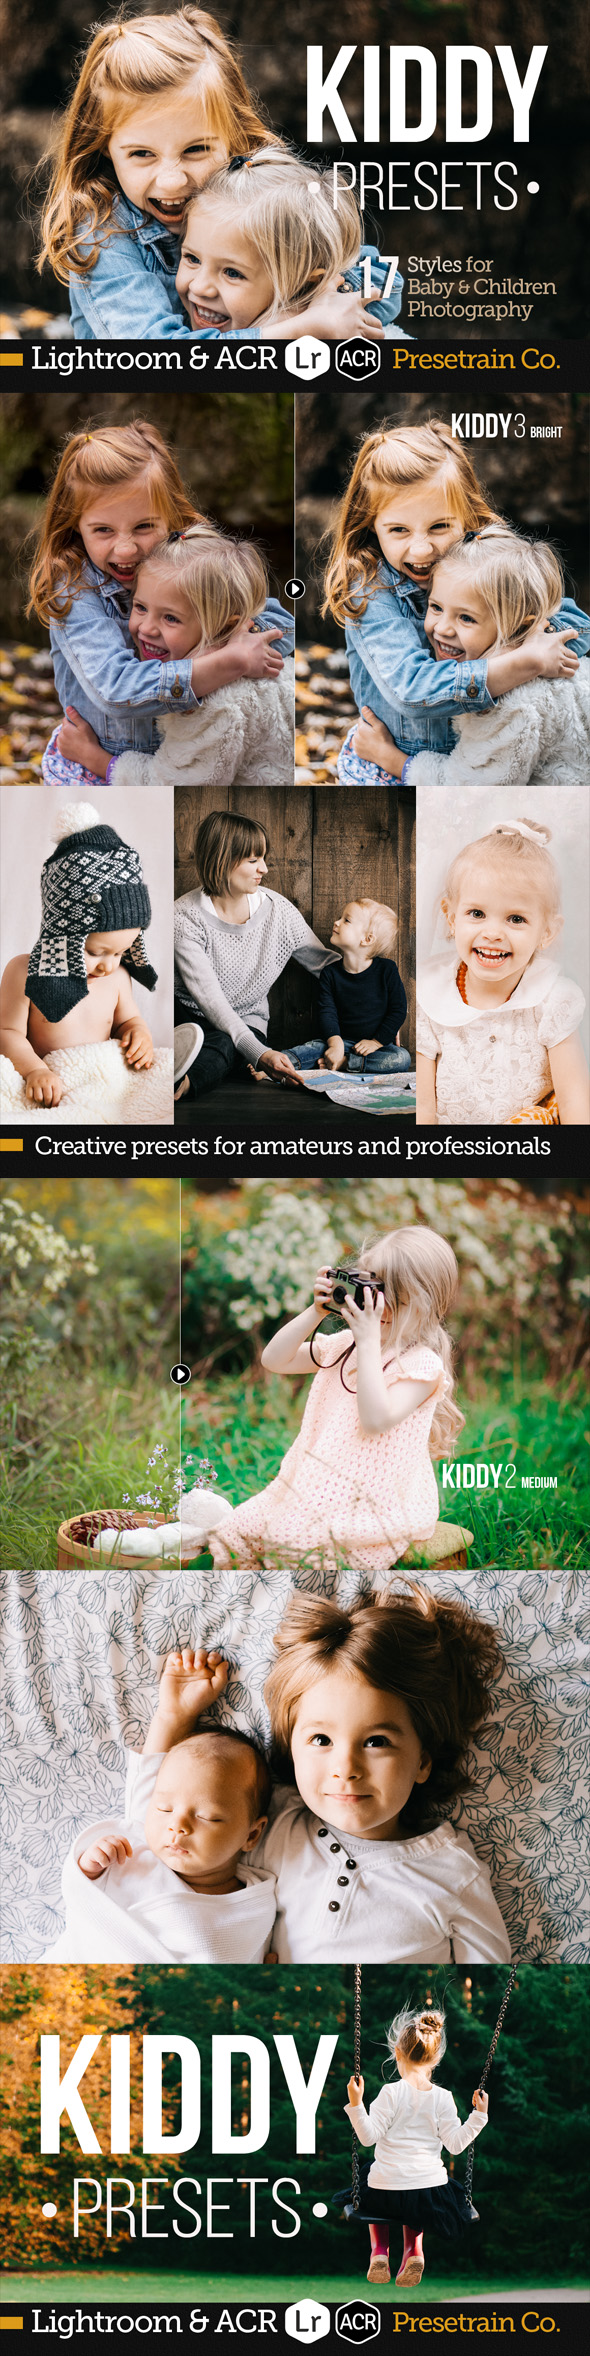 Kiddy - 17 Baby and Children Presets for Lightroom & ACR - Lightroom Presets Add-ons